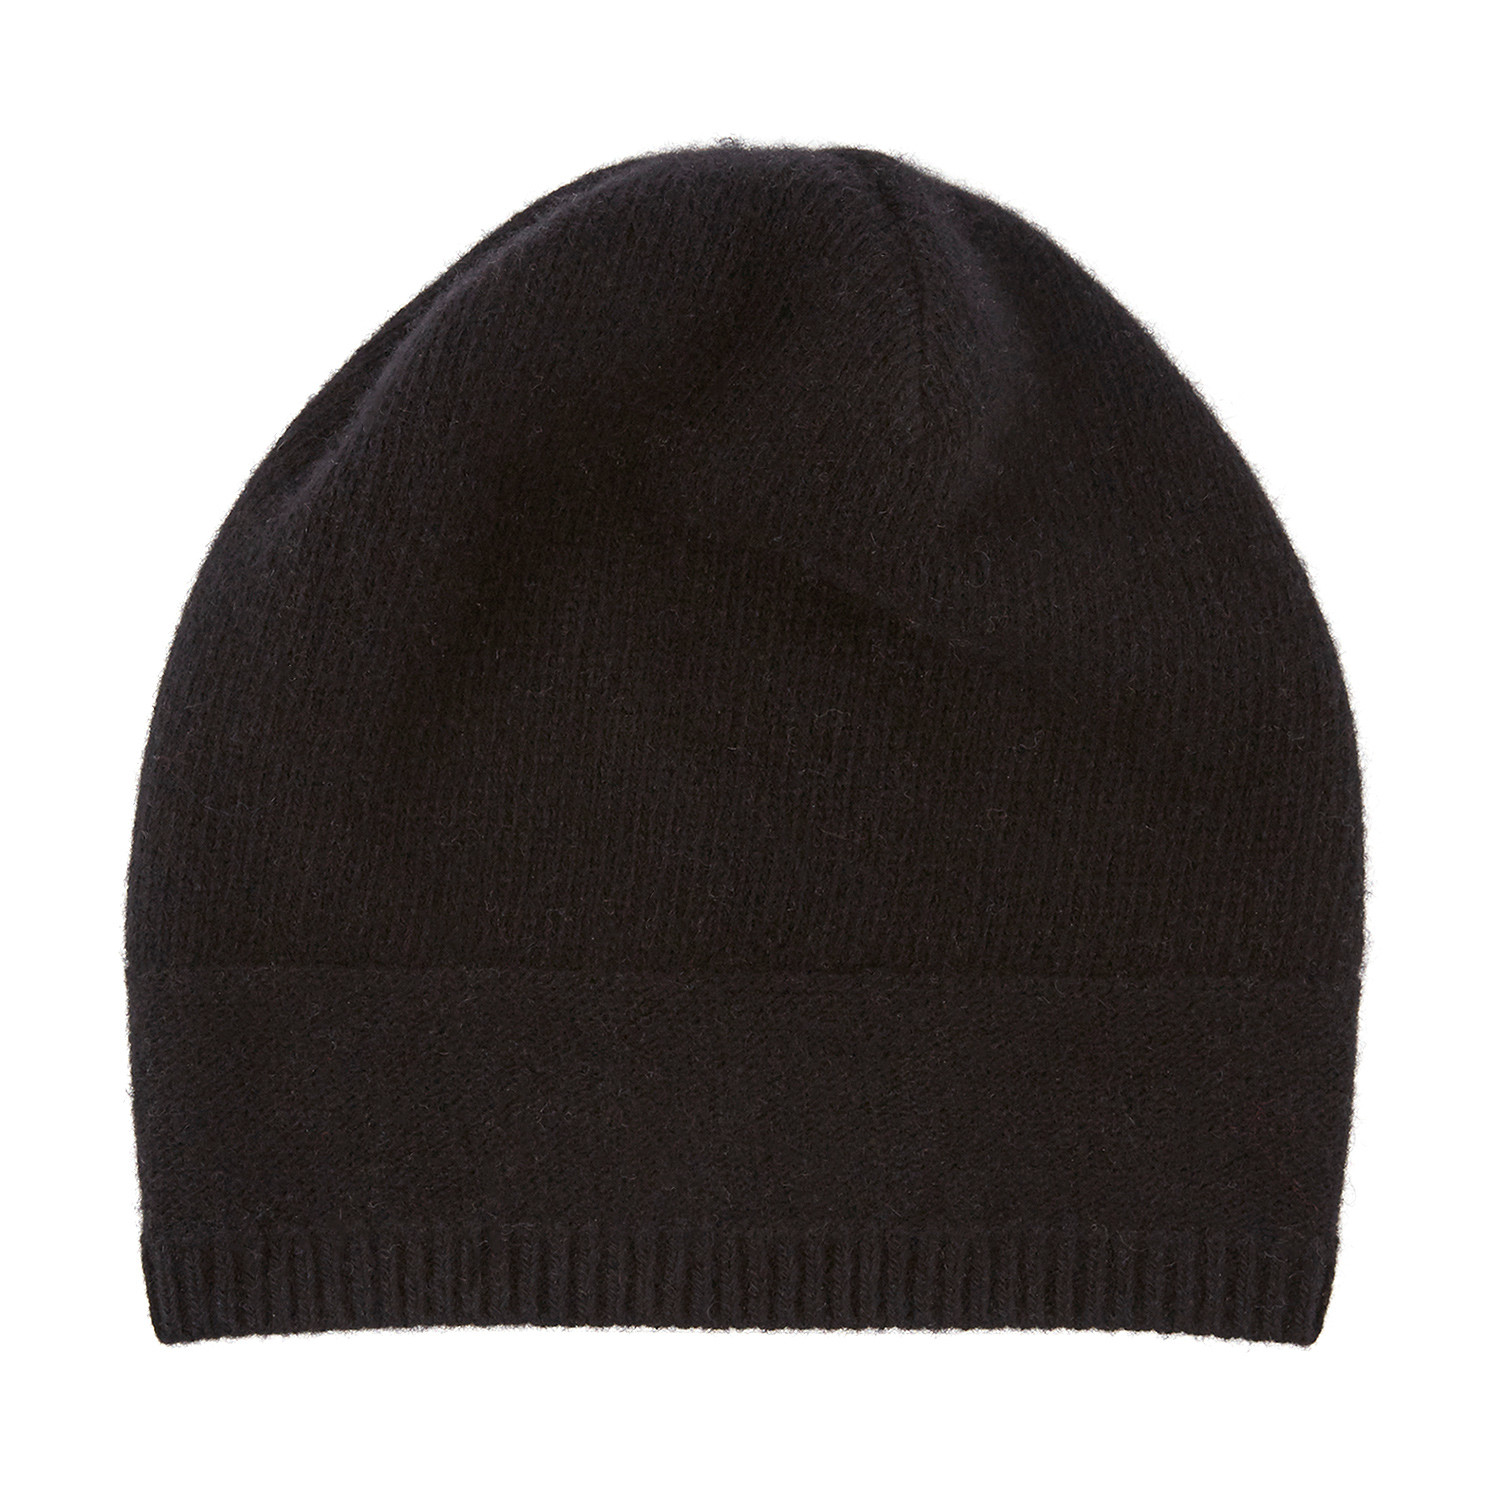 57fb9b632e9 Cashmere Slouchy Hat (Black) - Portolano - Touch of Modern